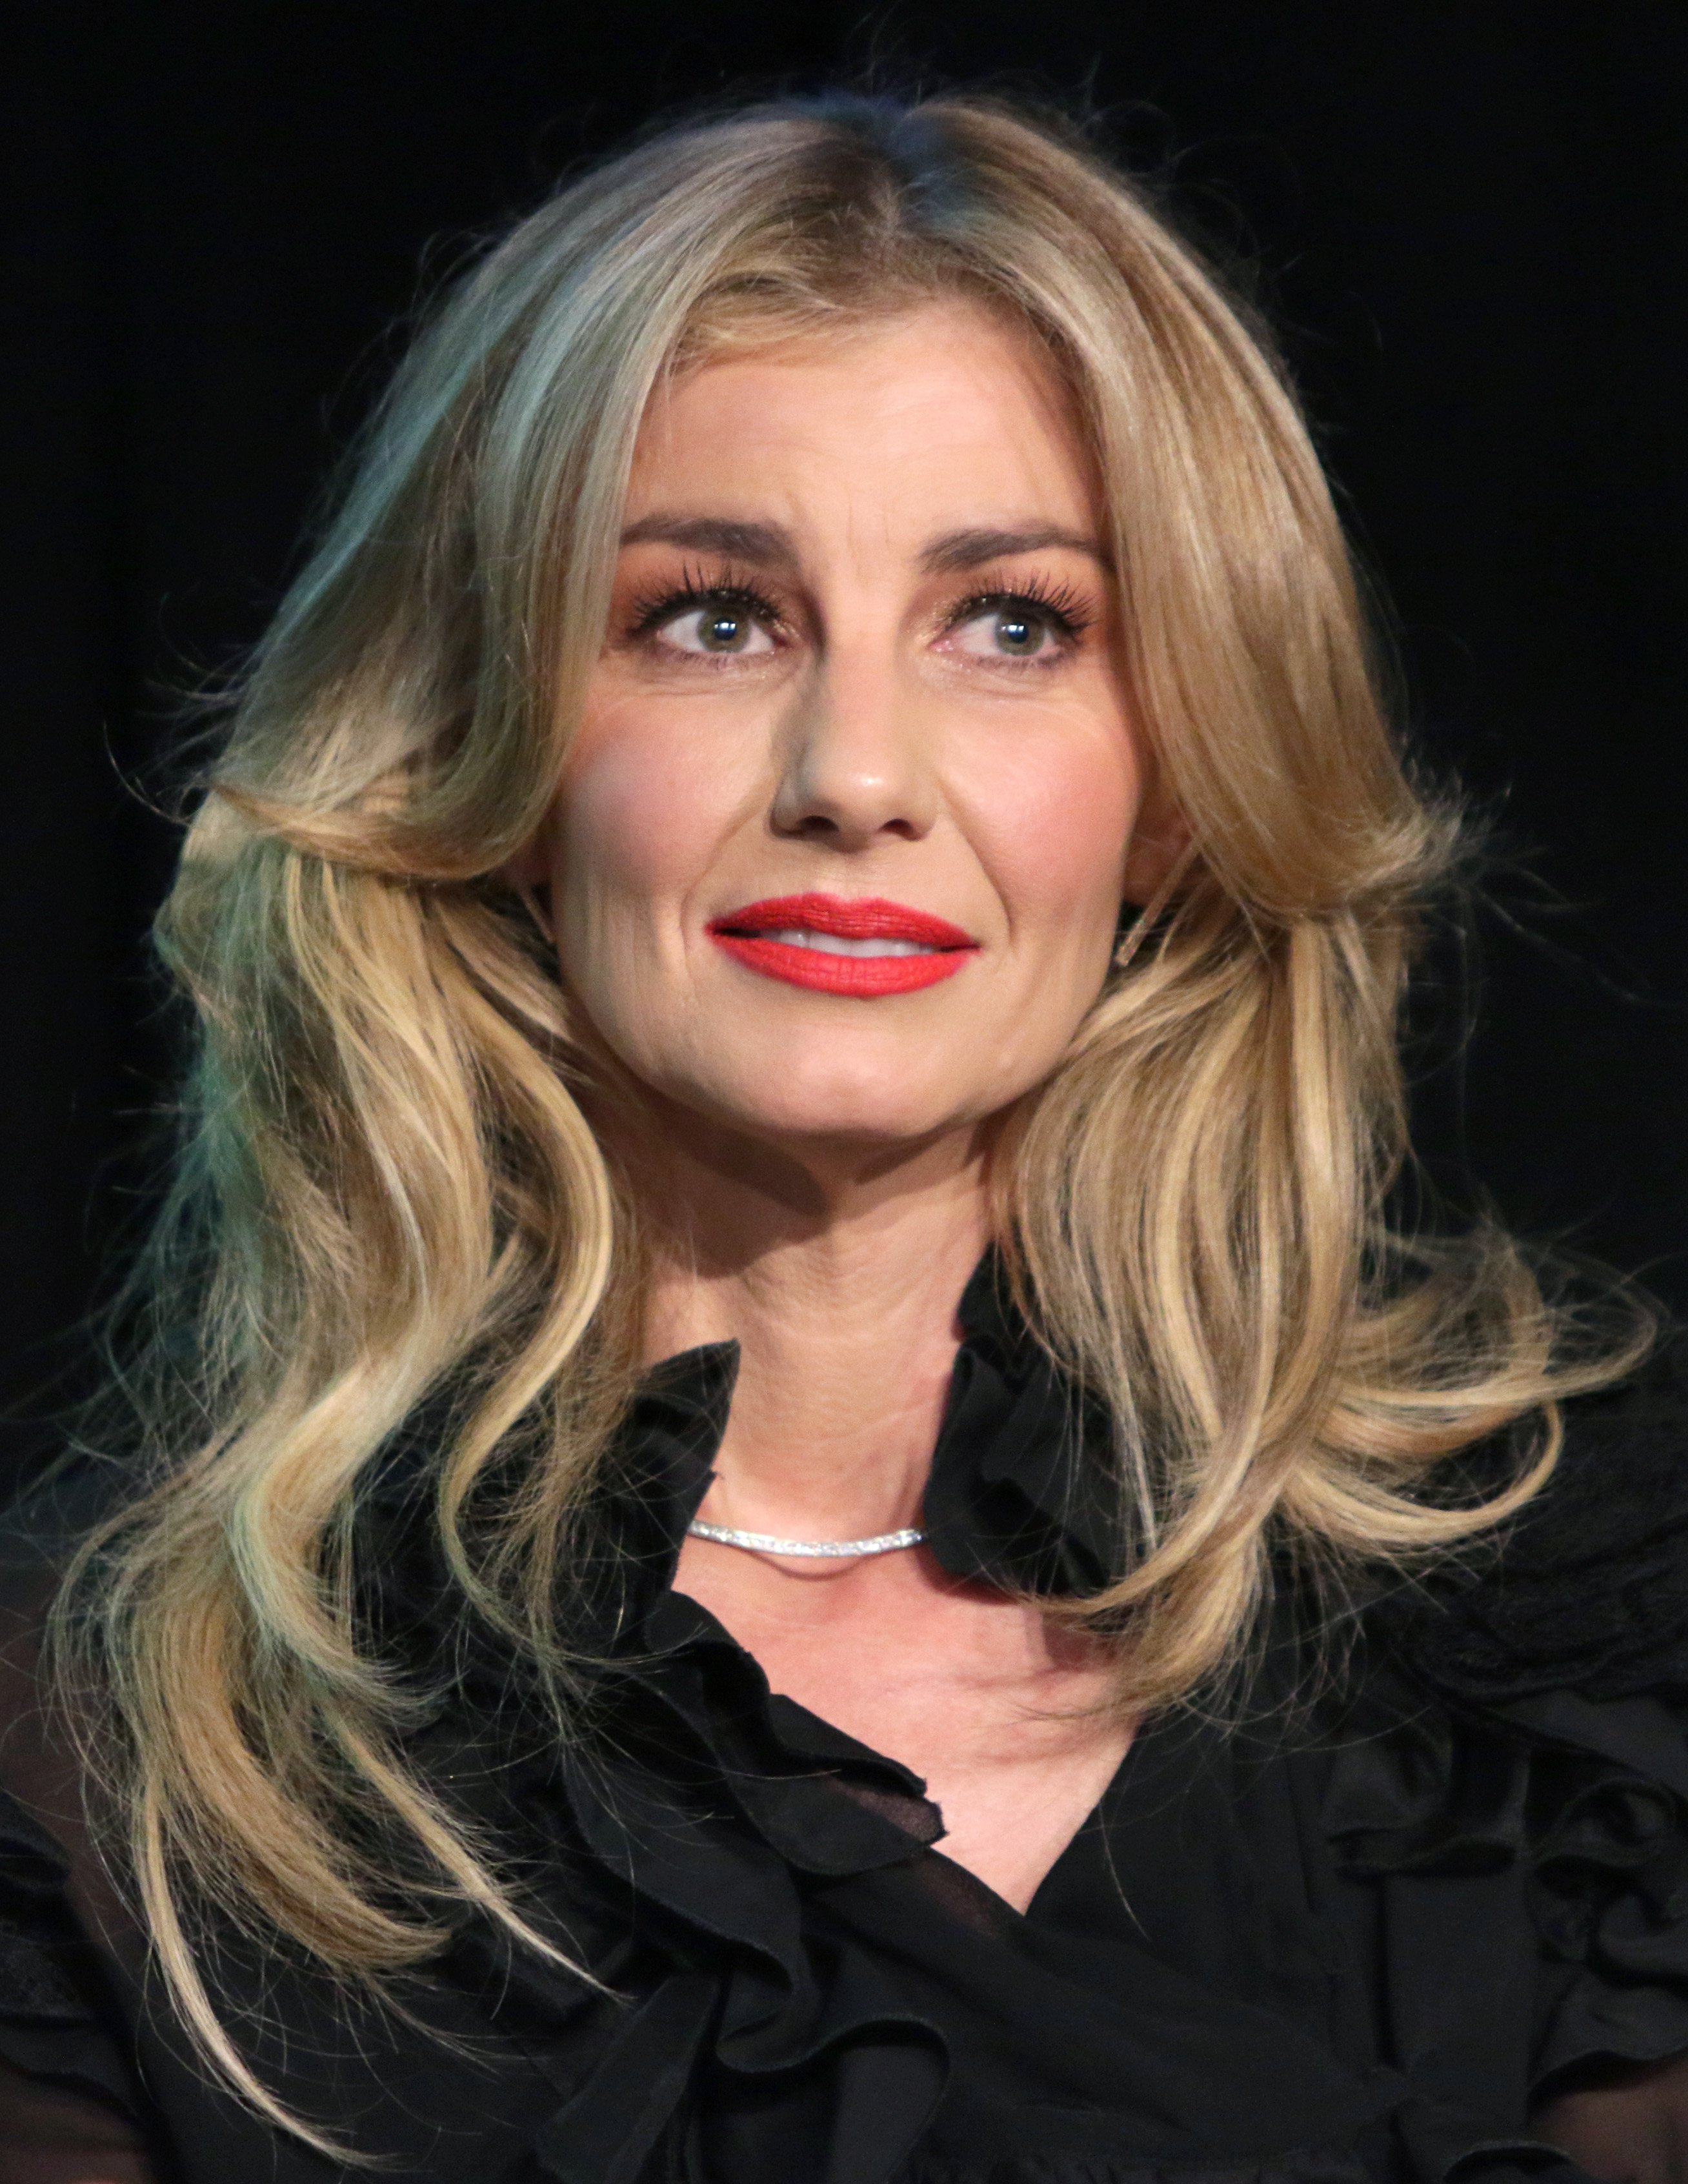 Faith Hill during the Billboard 2017 Touring Conference. | Source: Getty Images